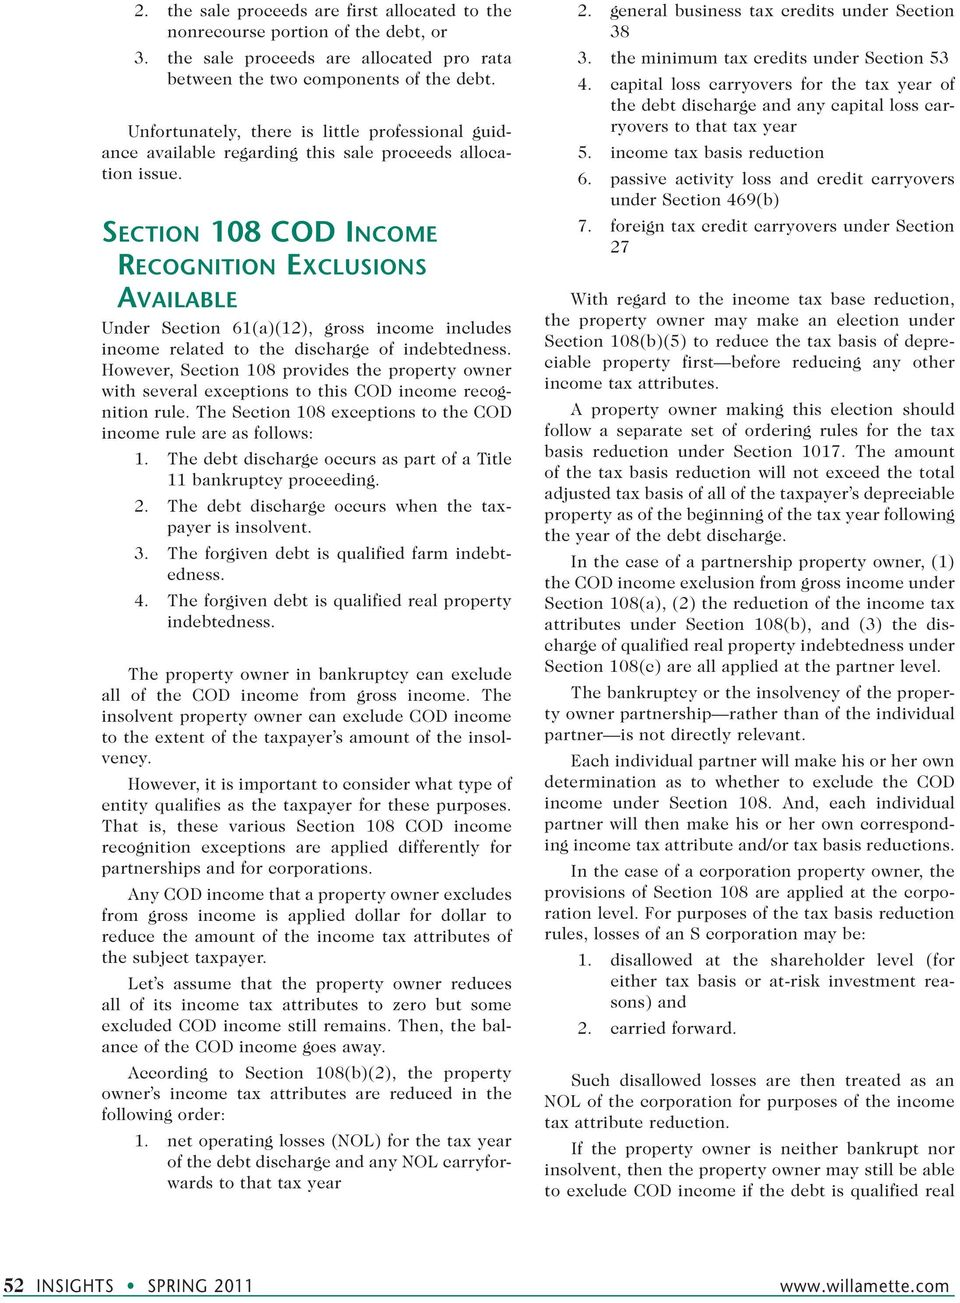 Section 108 COD Income Recognition Exclusions Available Under Section 61(a)(12), gross income includes income related to the discharge of indebtedness.